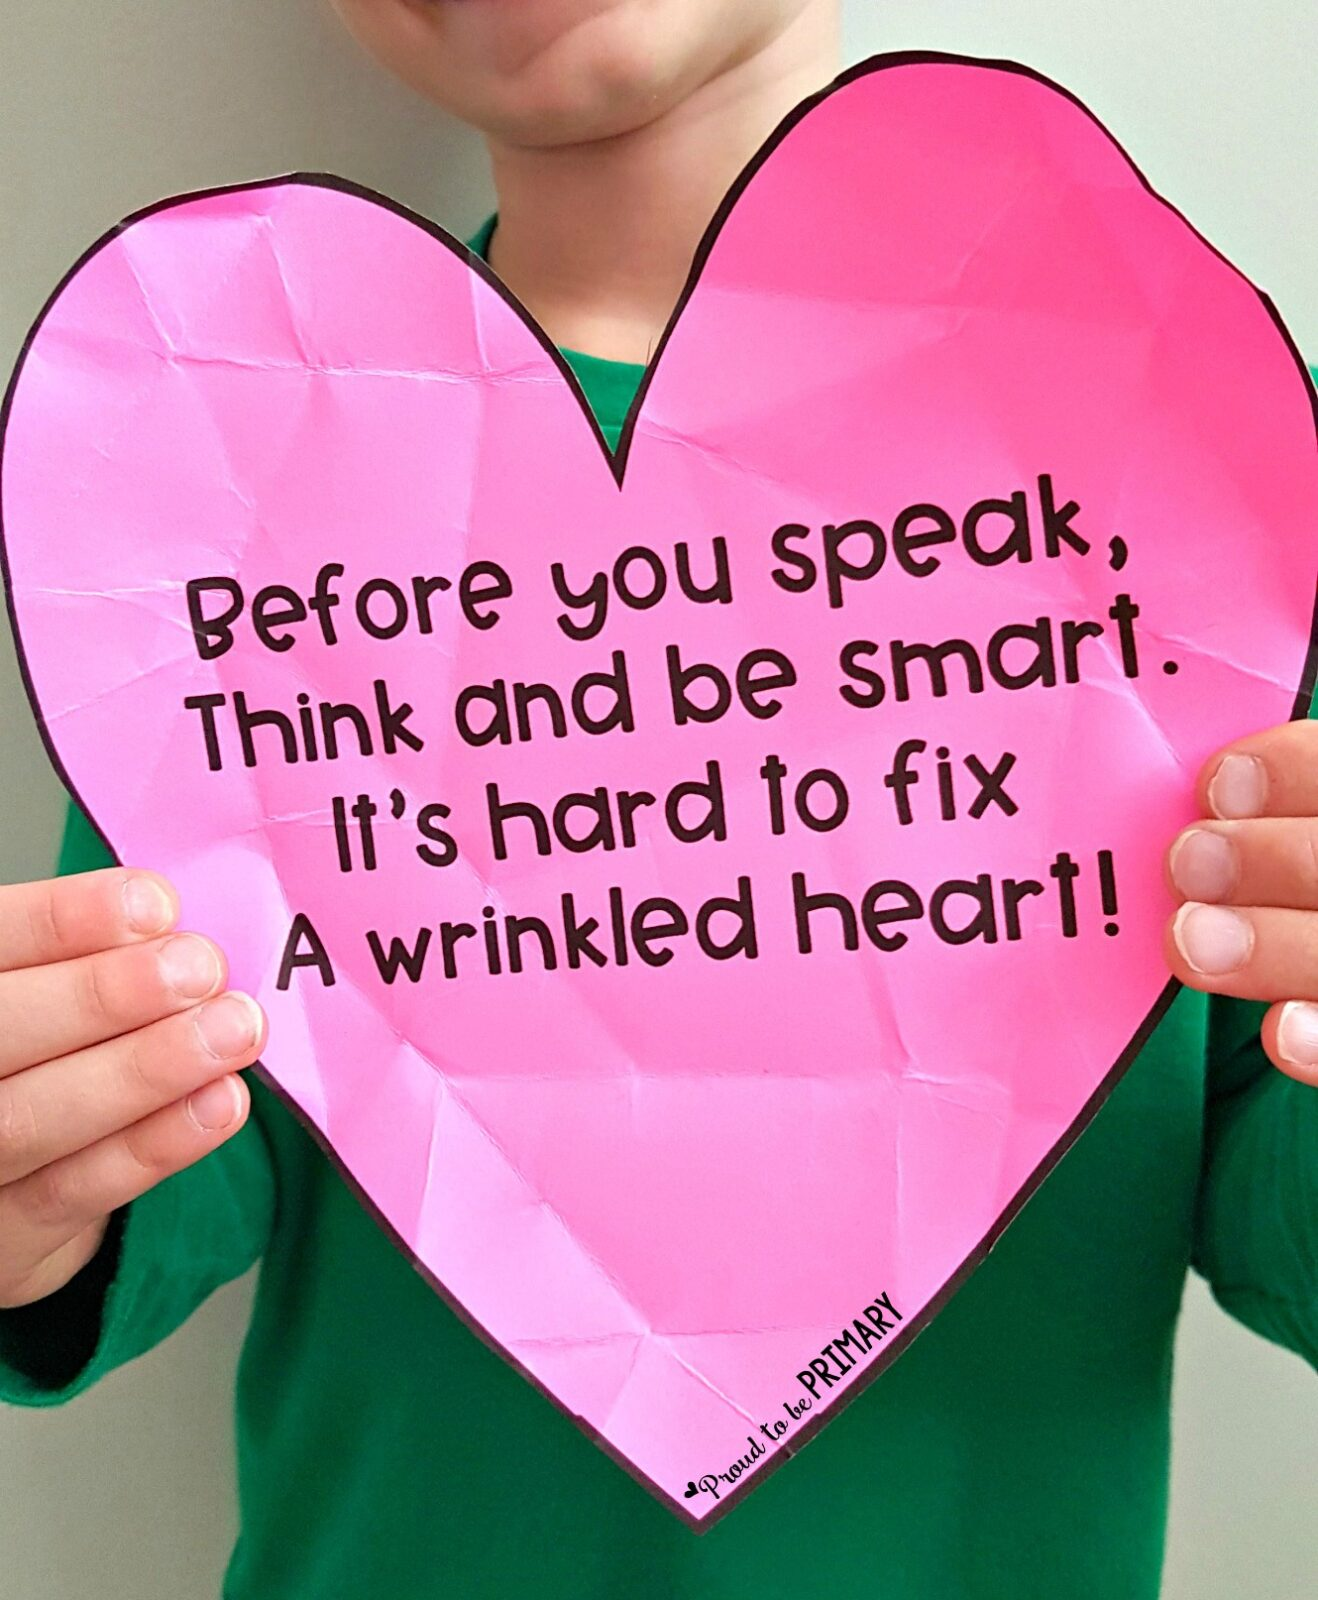 child holding up wrinkled heart for empathy activity and poem